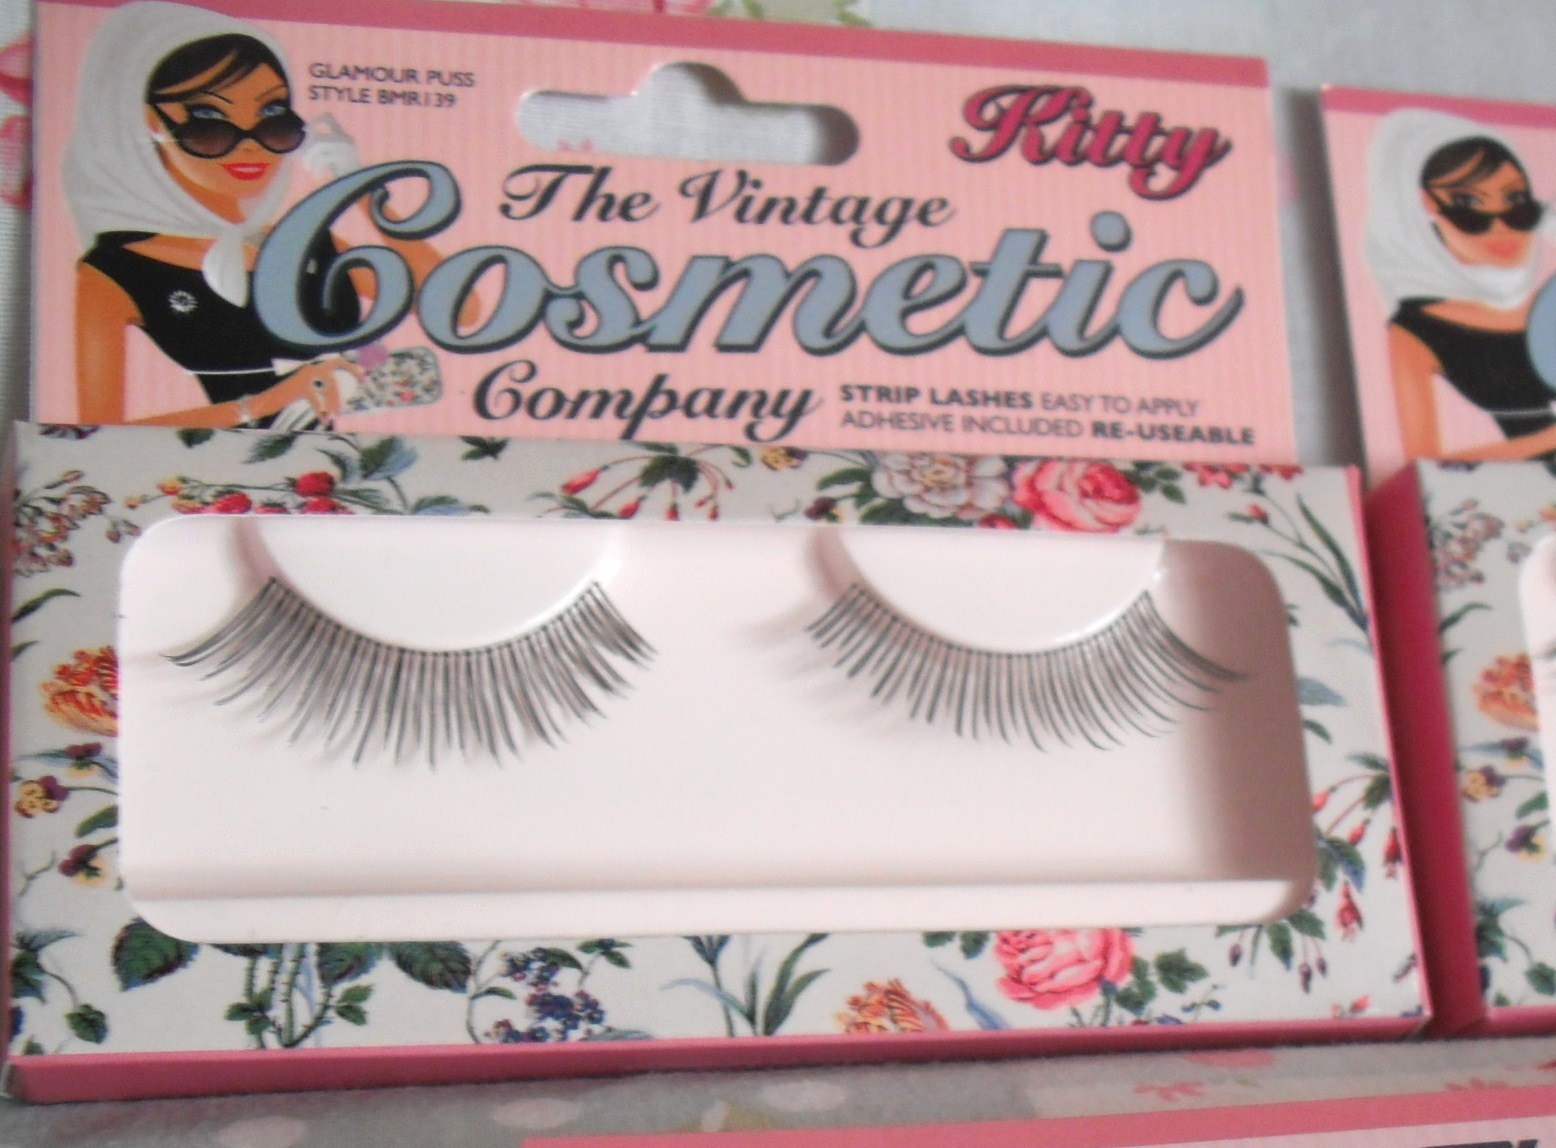 be3c83a4667 ... in the UK selling a range of glamorous eyelashes. There are 5 different  styles to choose from, and I received two pairs to try out, Kitty and  Gracie.